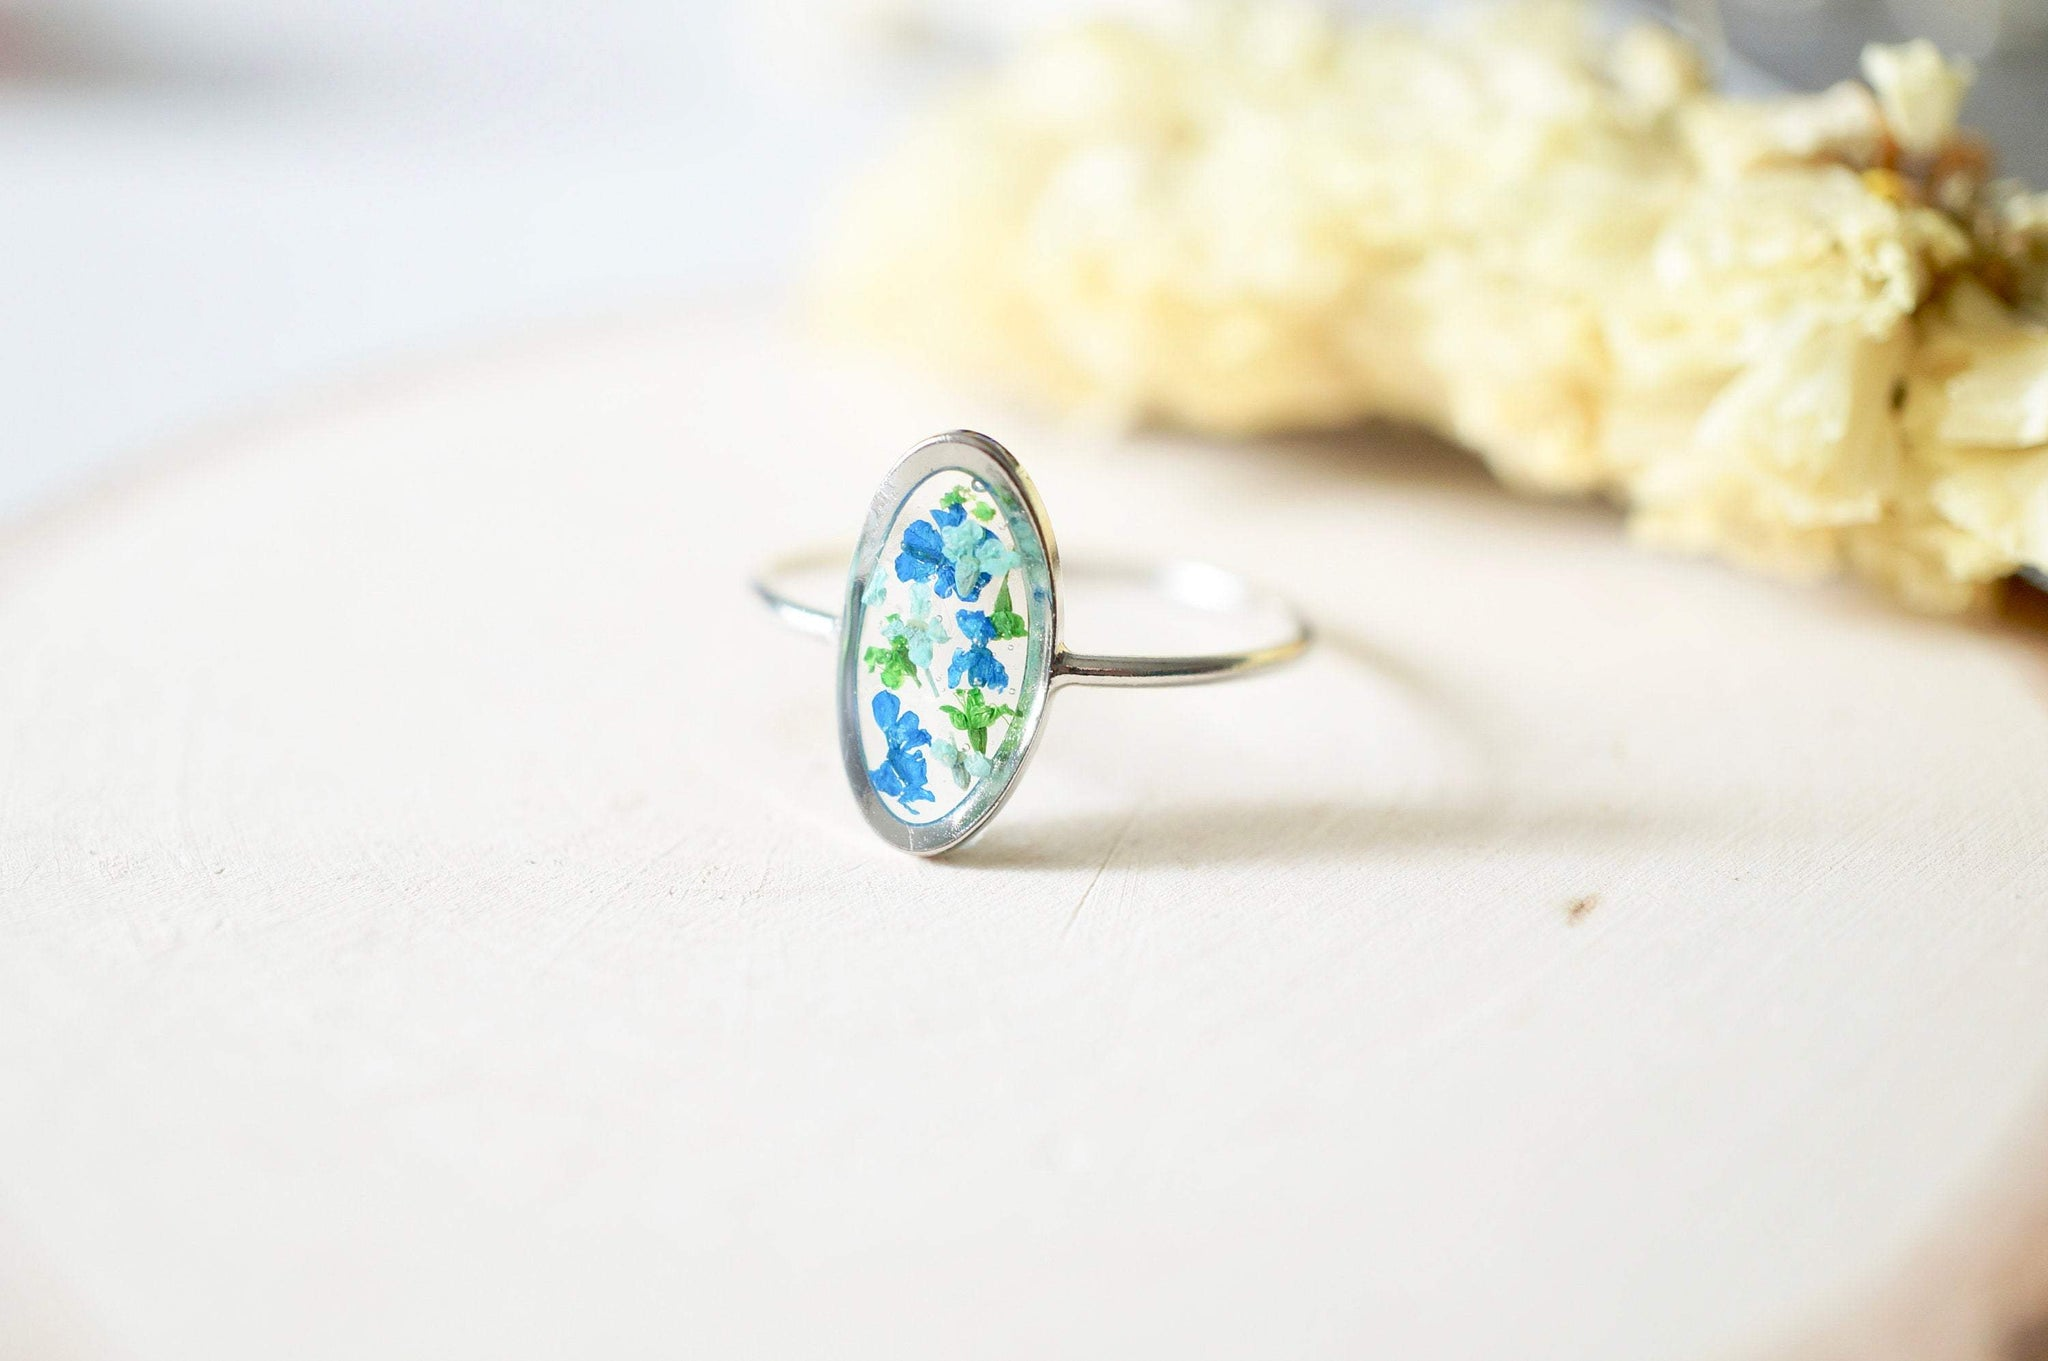 Real Pressed Flower and Resin Ring, Oval Silver Band in Blue Teal Green